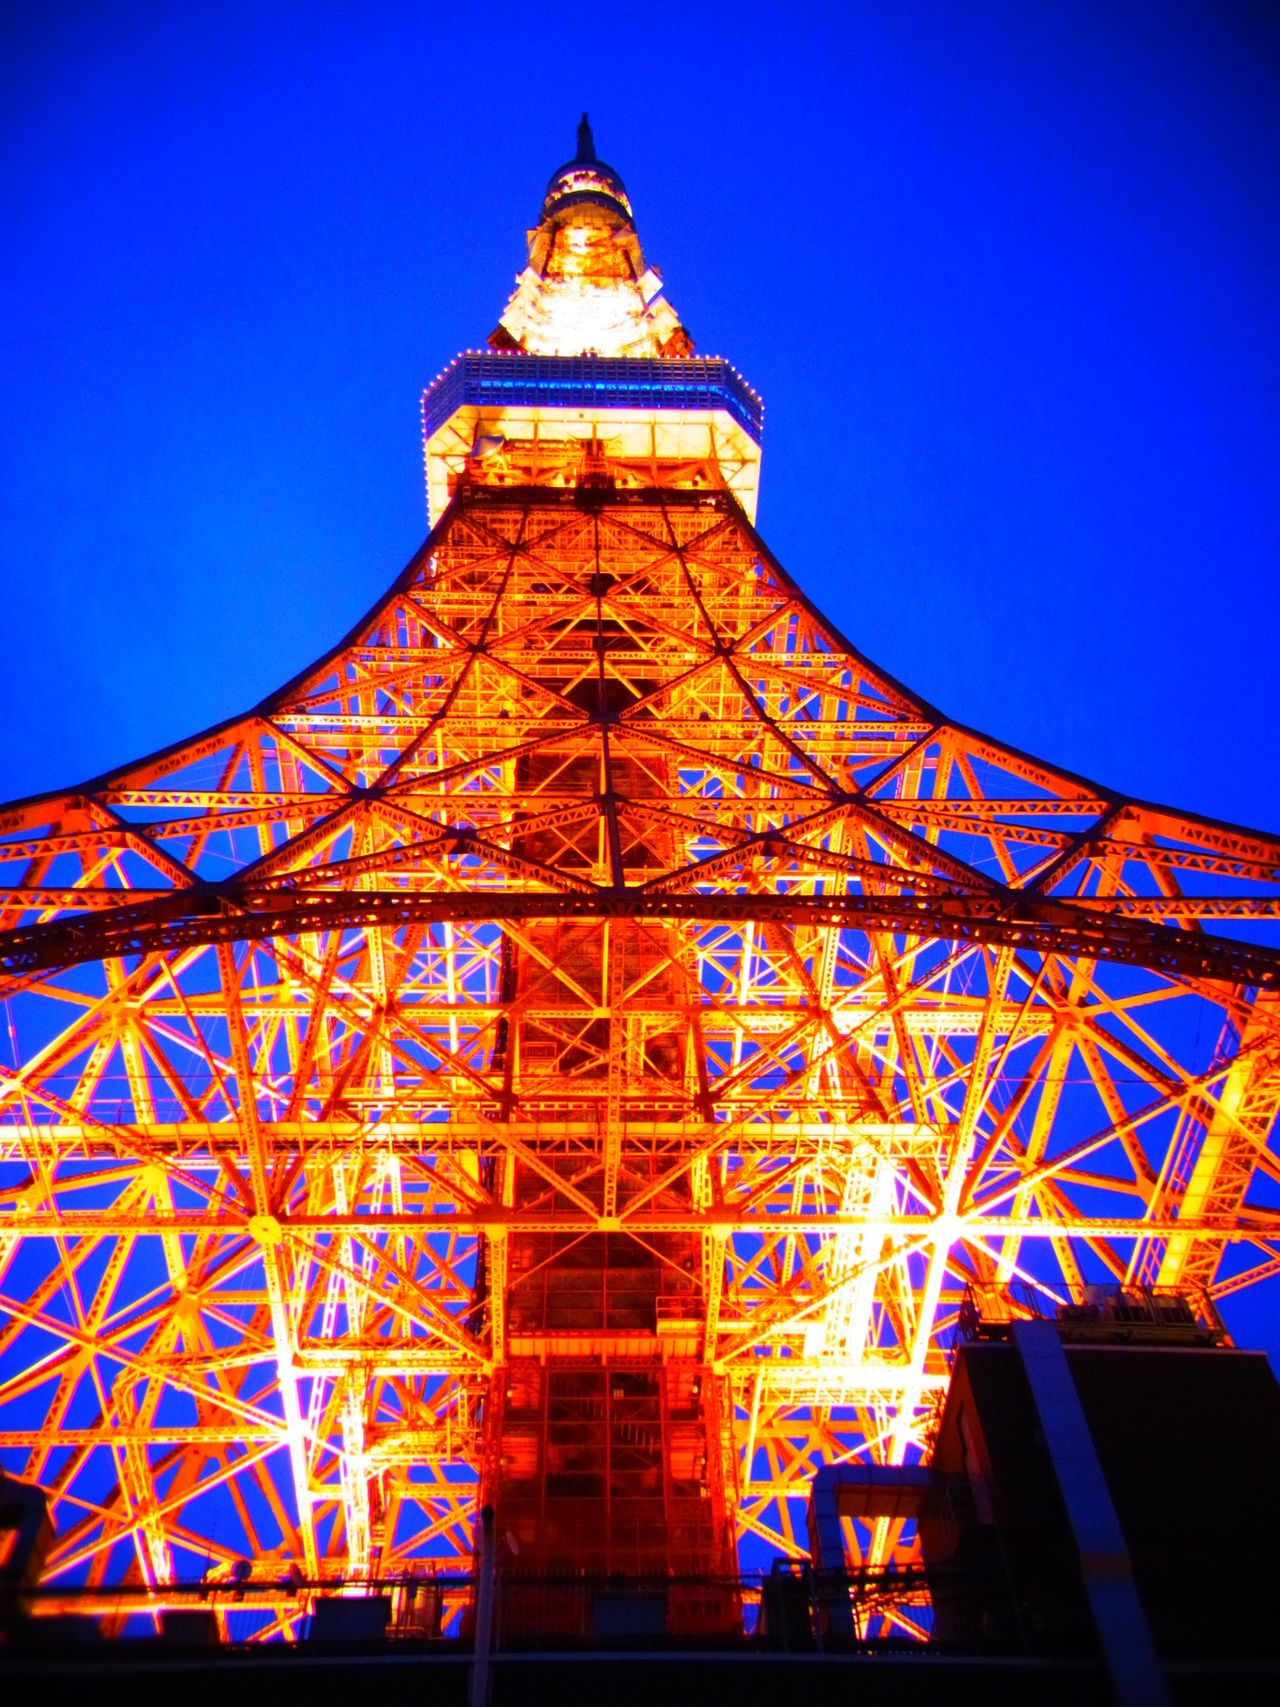 Battle Of The Cities Tokyo Tokyo Tower Tokyo Night Tokyo Days Architecture Built Structure Low Angle View Building Exterior Tower Travel Destinations Famous Place Illuminated Tall - High International Landmark